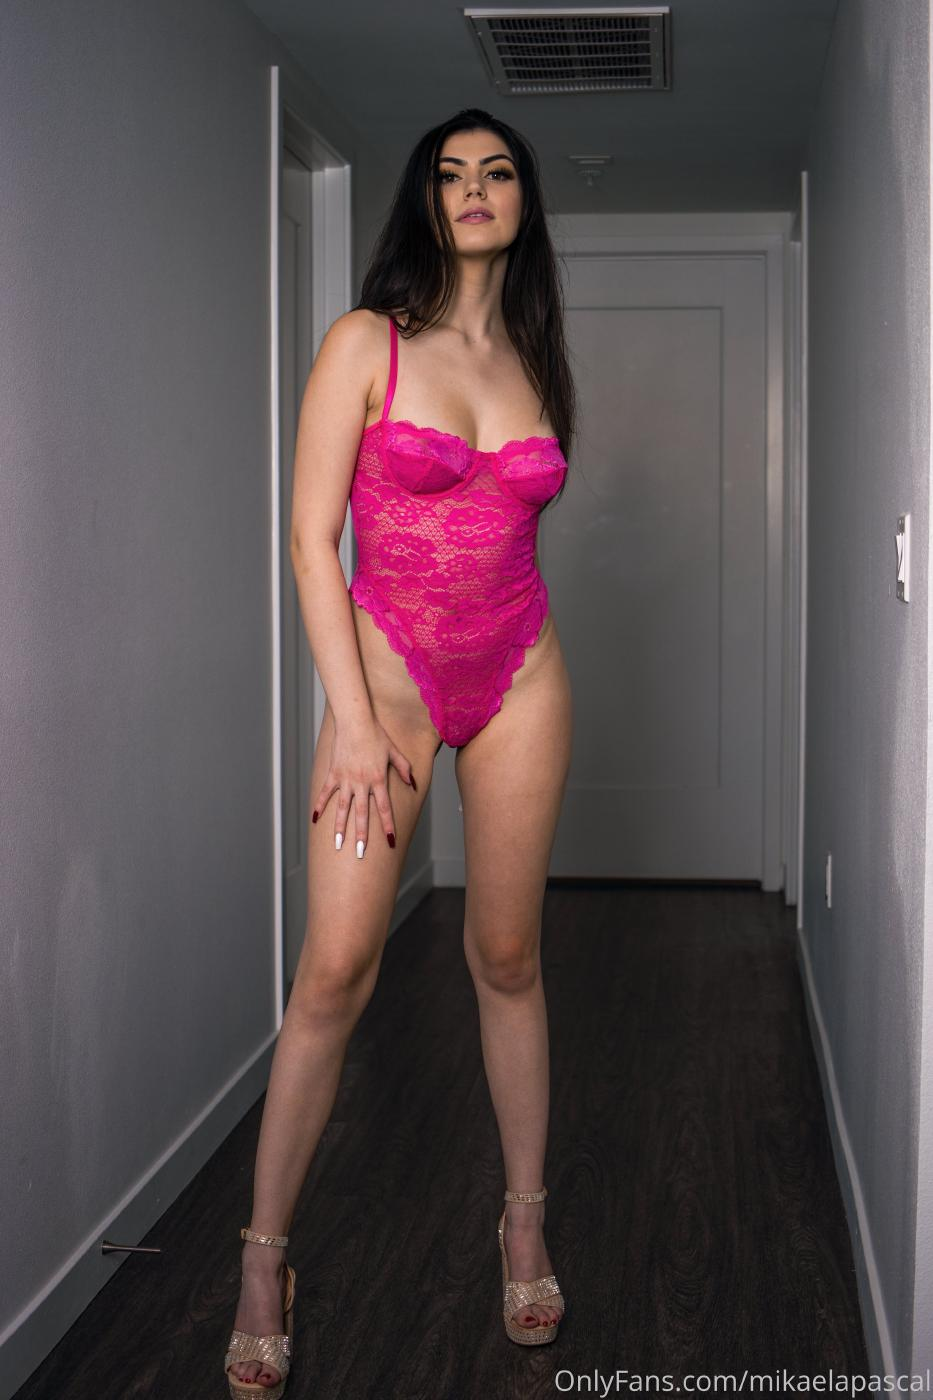 Mikaela Pascal Pink Bodysuit Lingerie Onlyfans Set Leaked Ripxxb